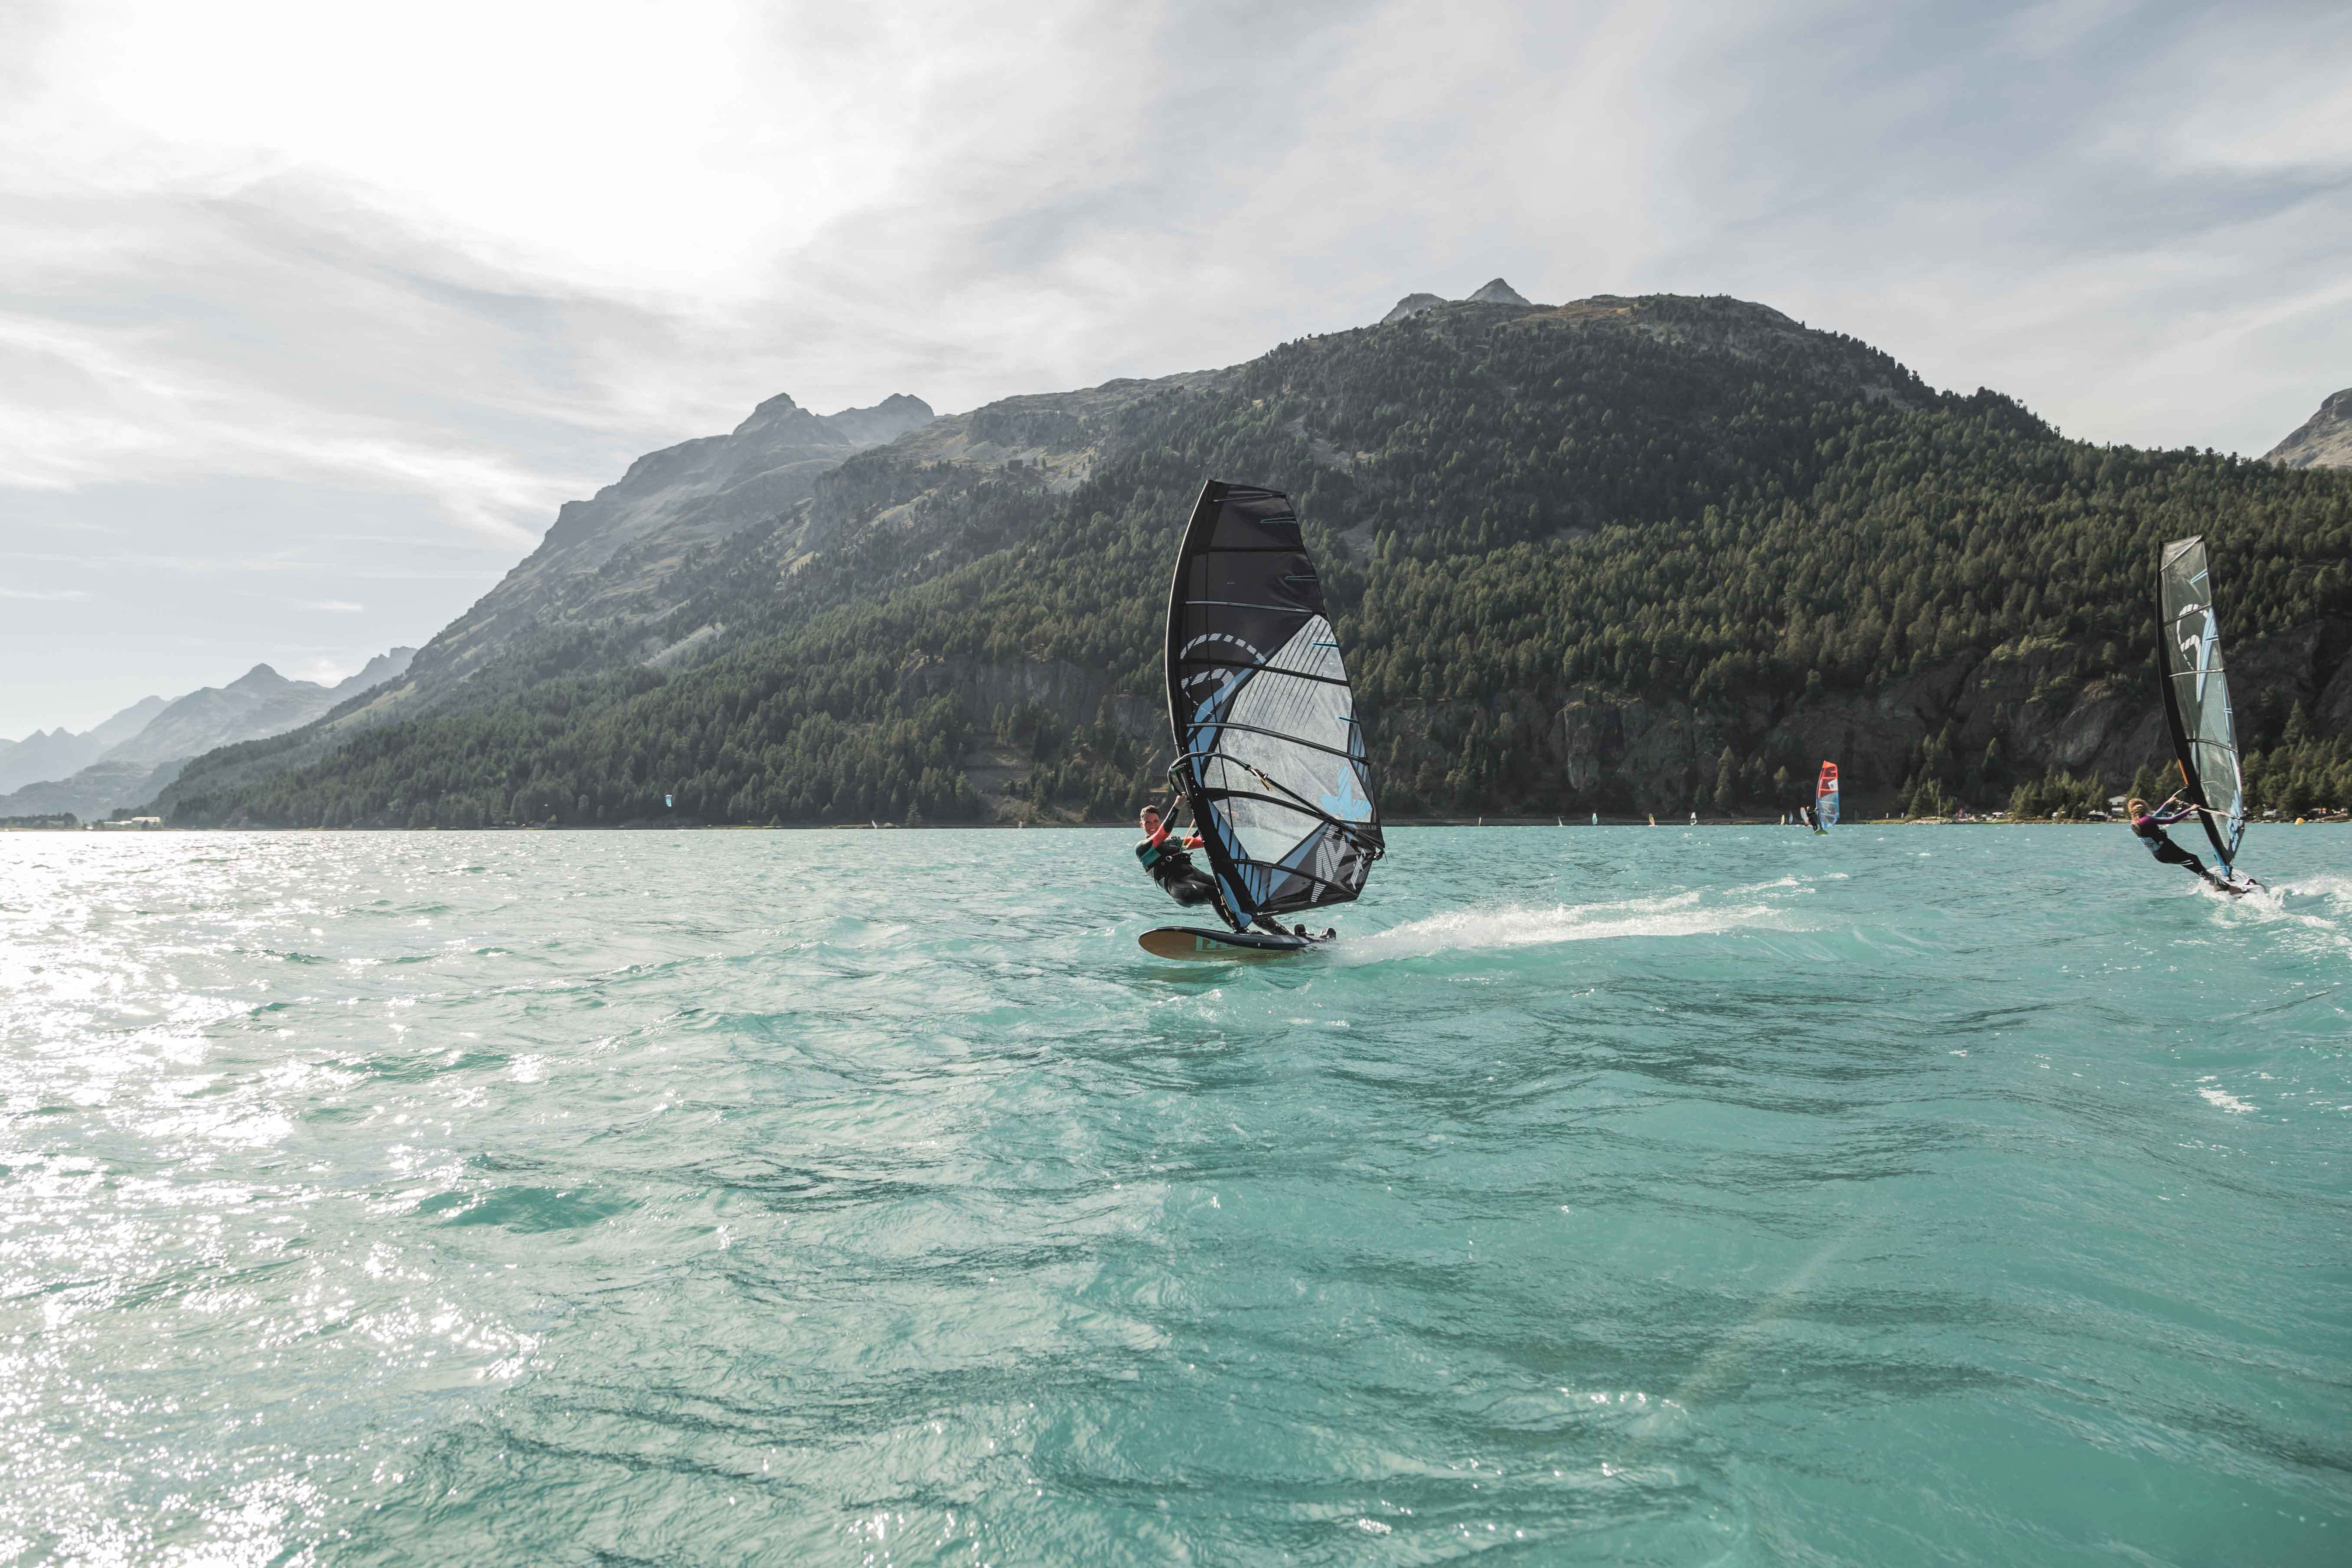 Home of alpine windsurfing